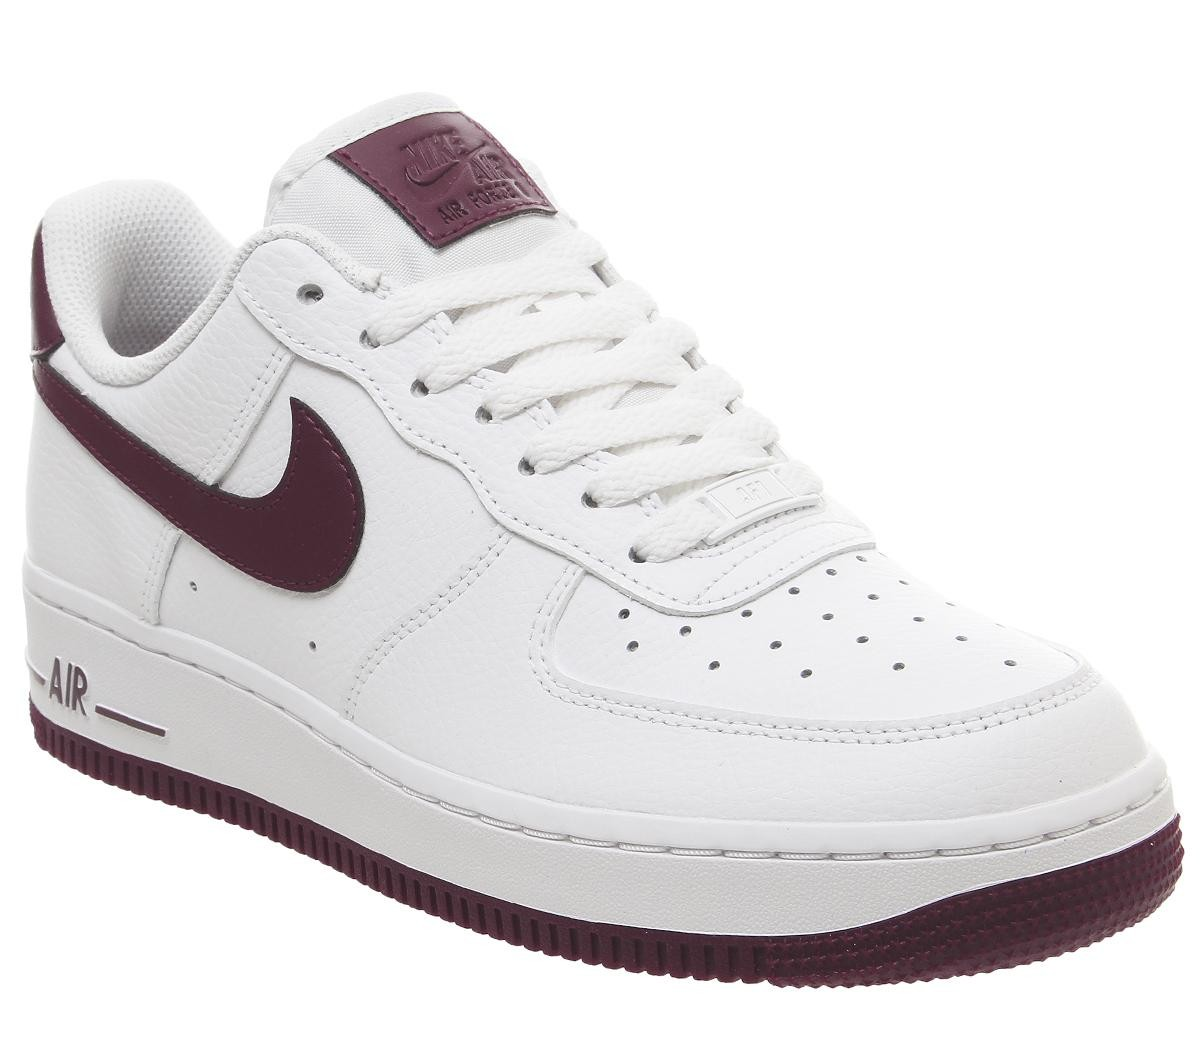 air force 1 femme bordeau